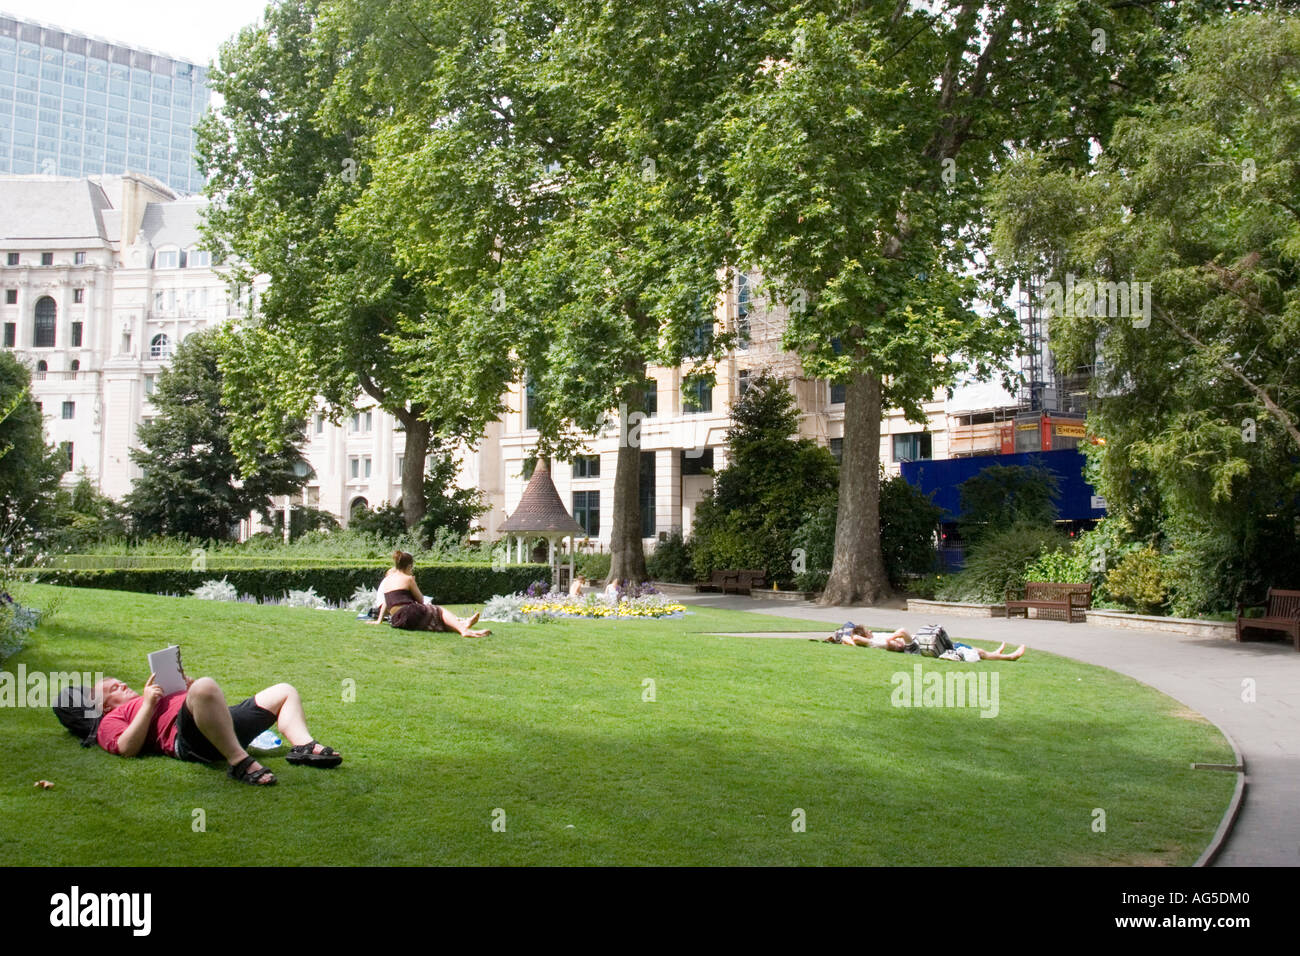 A quiet day in Finsbury Circus Gardens City of  London GB UK - Stock Image